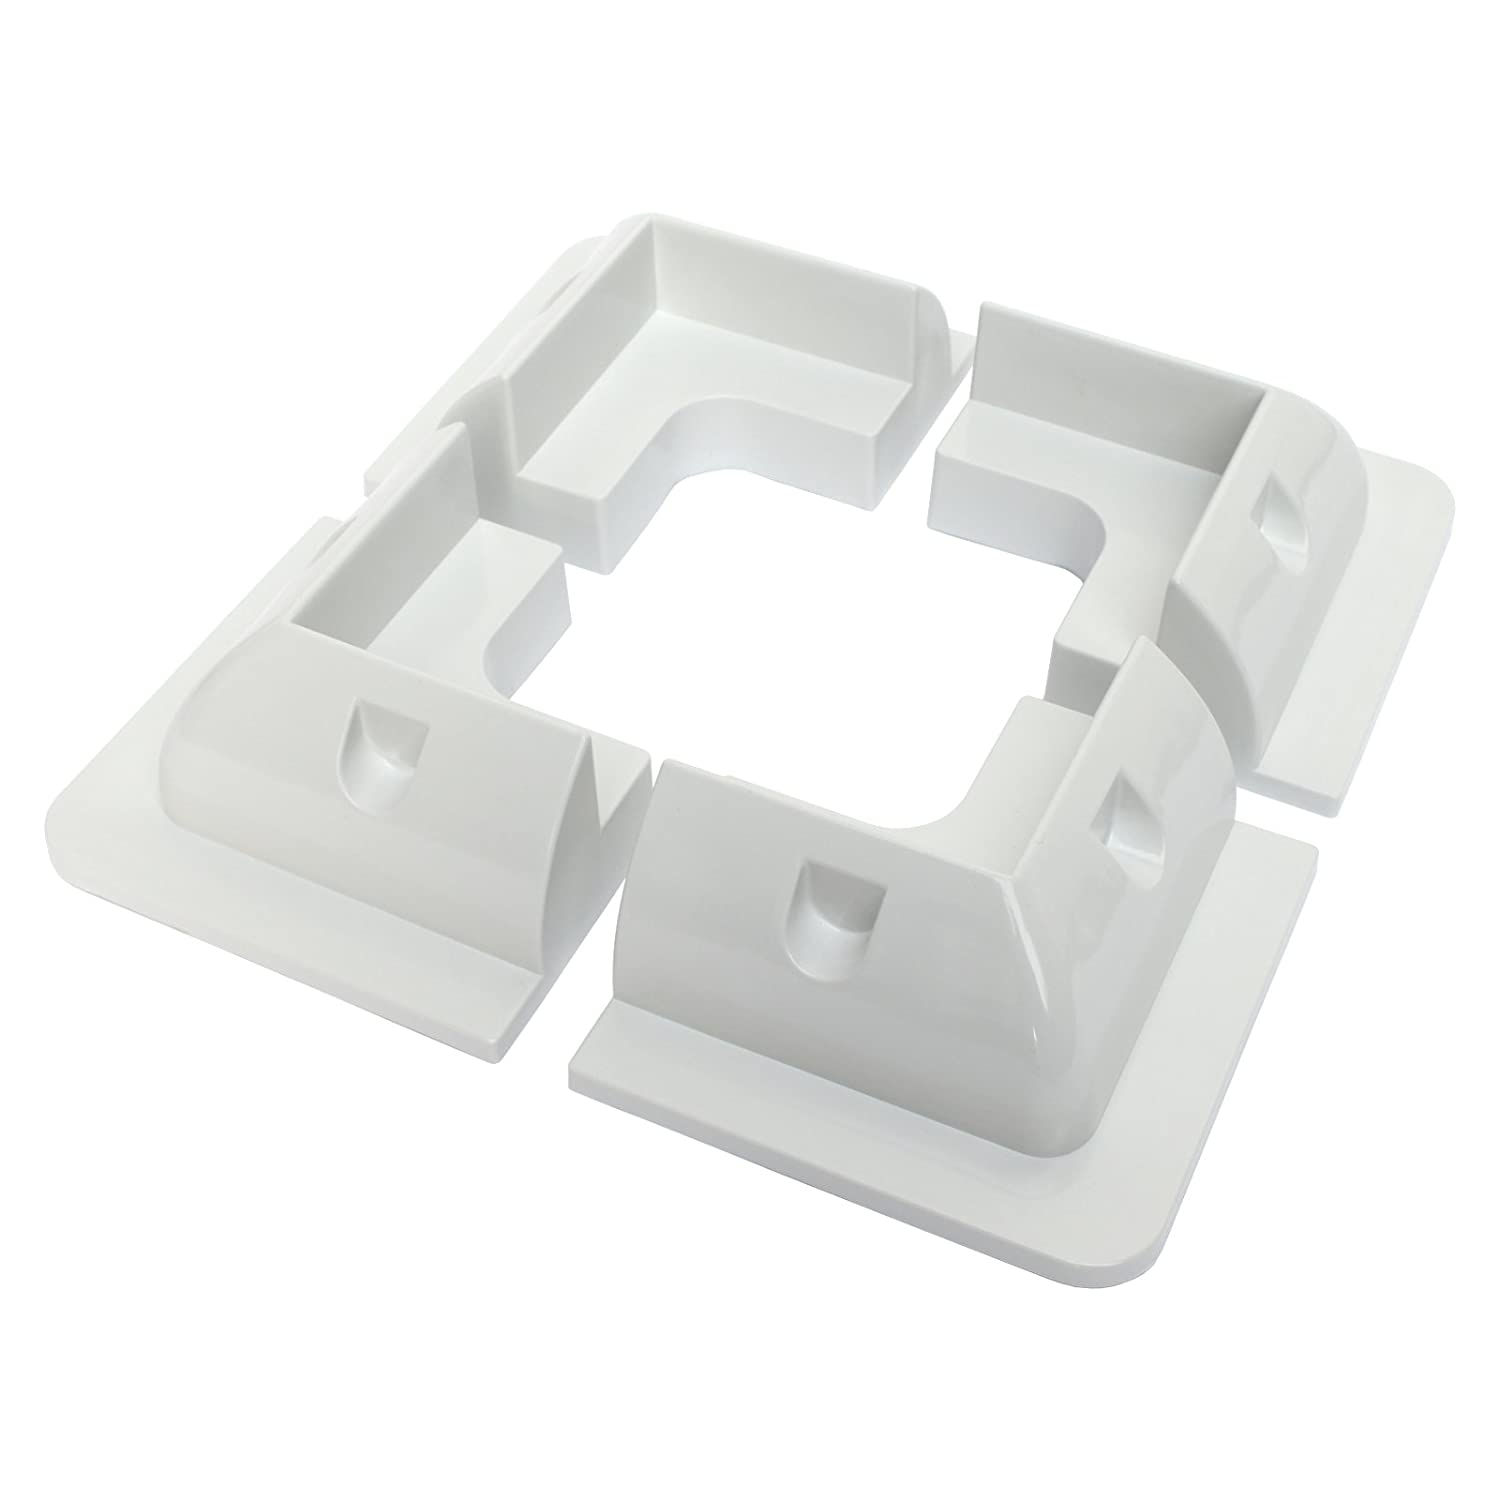 Set of 4 corner plastic mounting brackets for fixing solar panels to motorhomes, campervans, caravans, boats or any other roofs and flat surfaces Photonic Universe